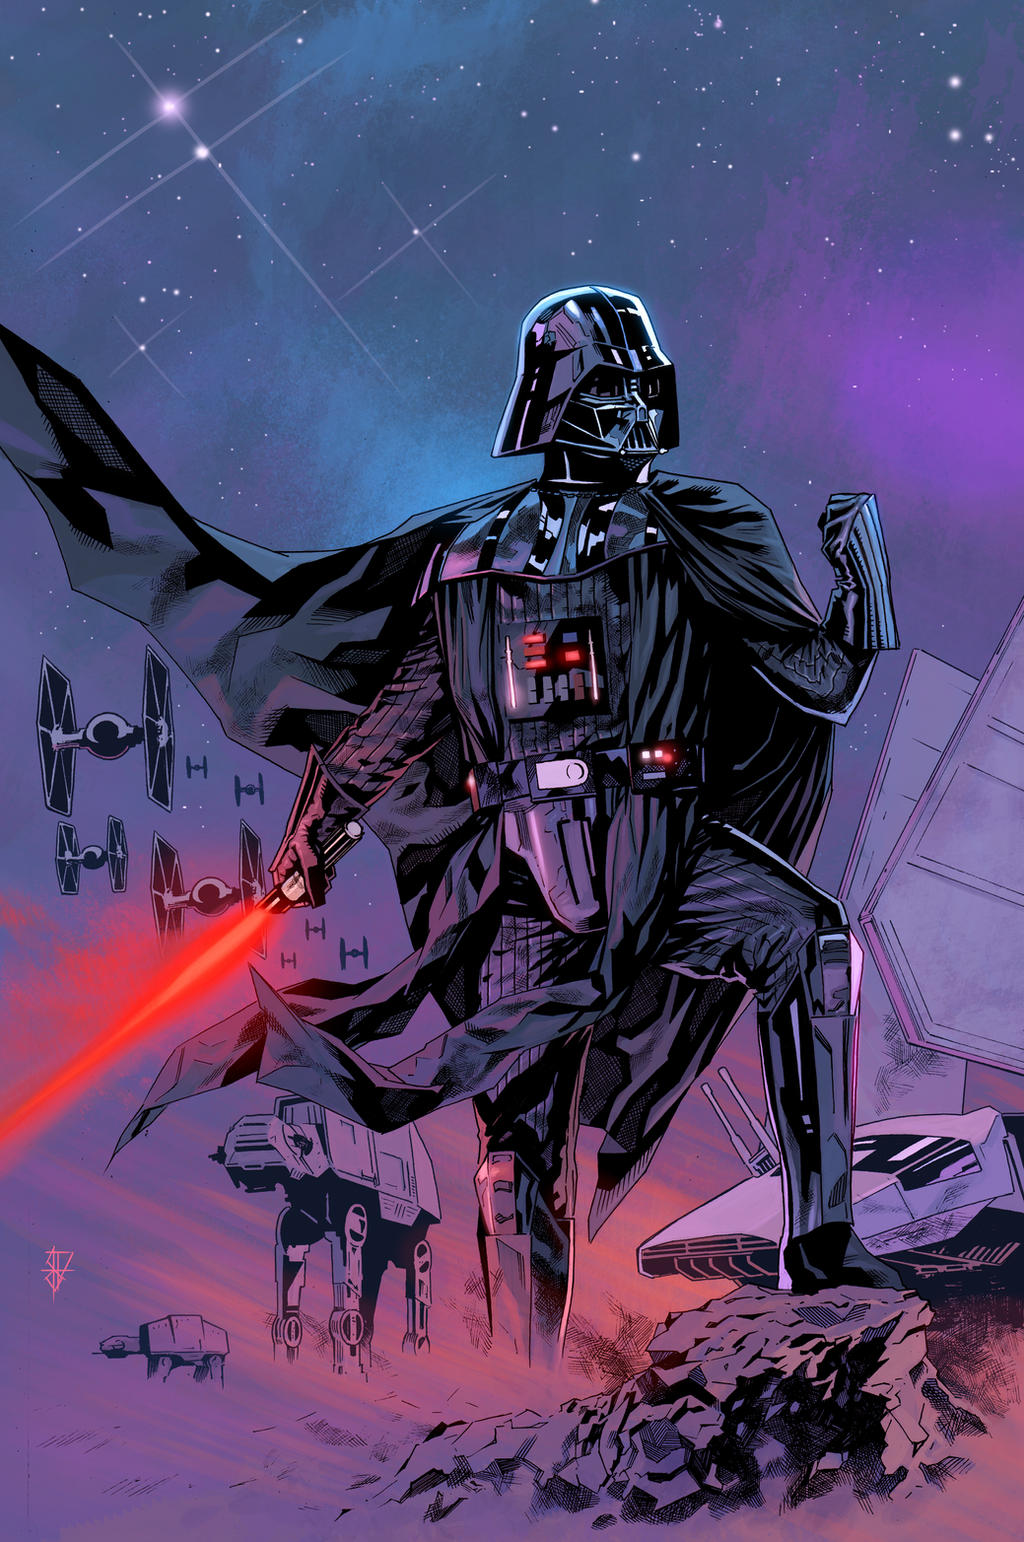 Star Wars Darth Vader trying to look tough